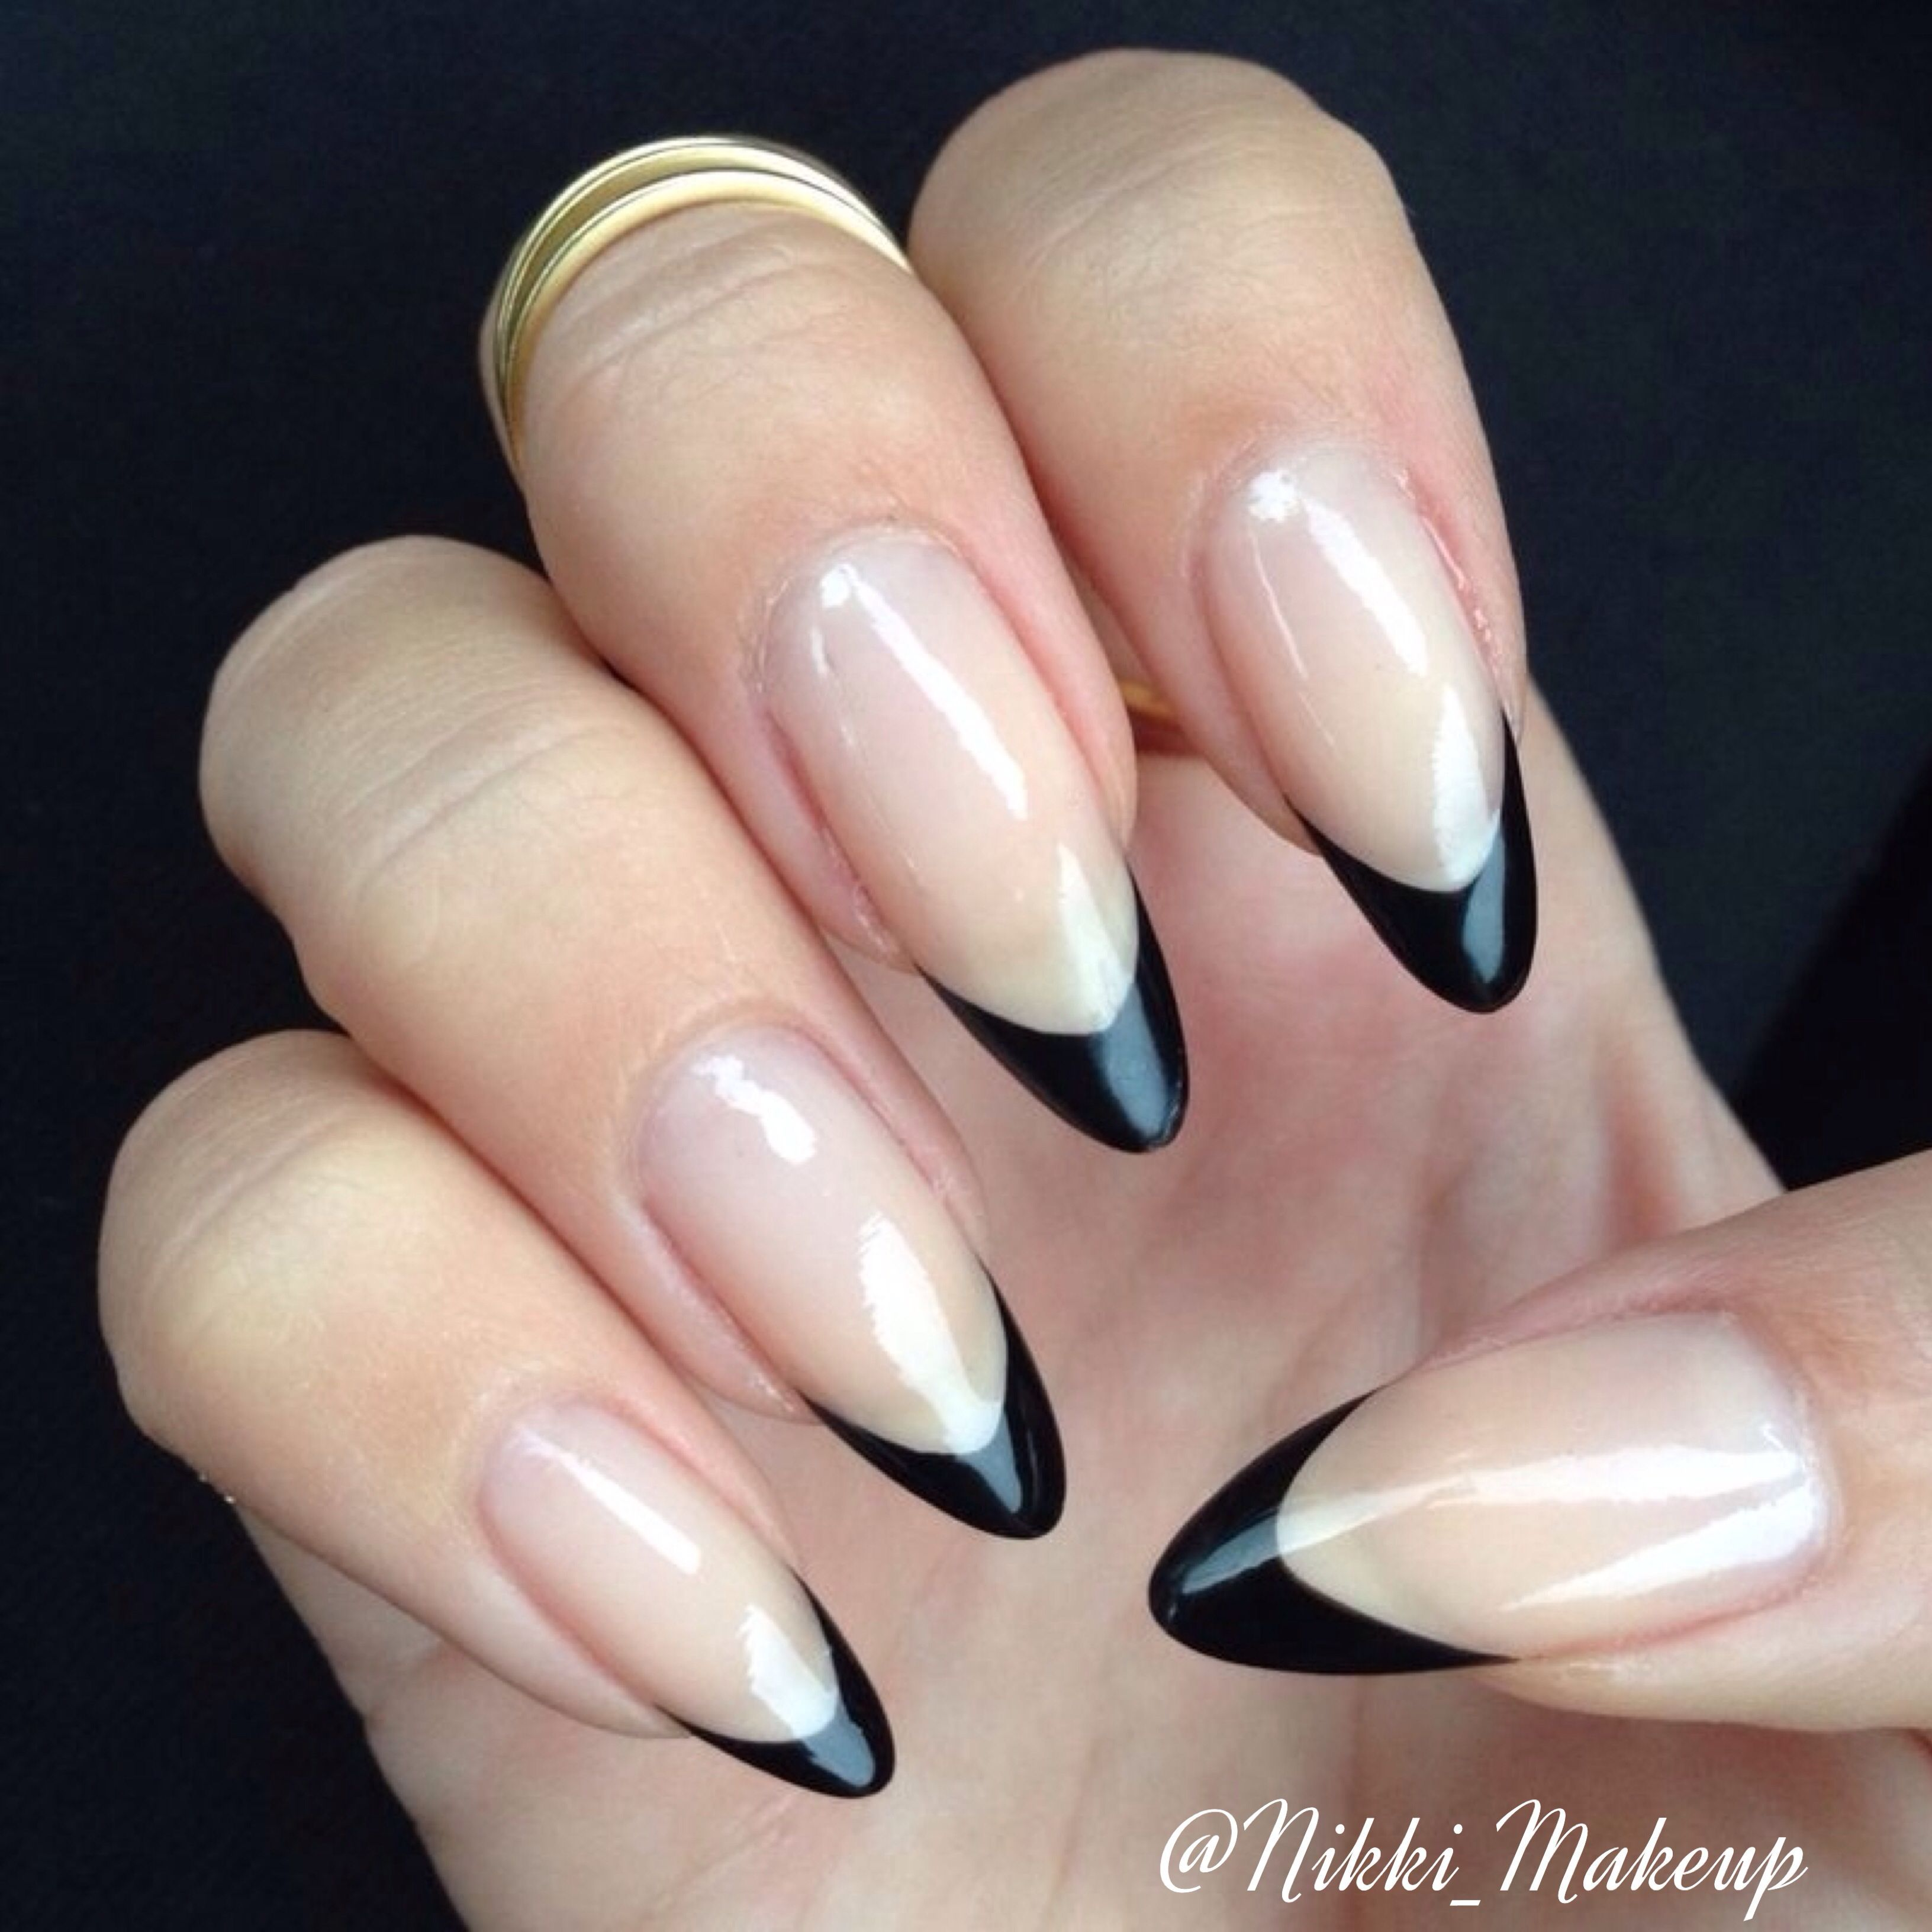 Dekor Image By Georgetta Ide In 2020 French Tip Nail Designs